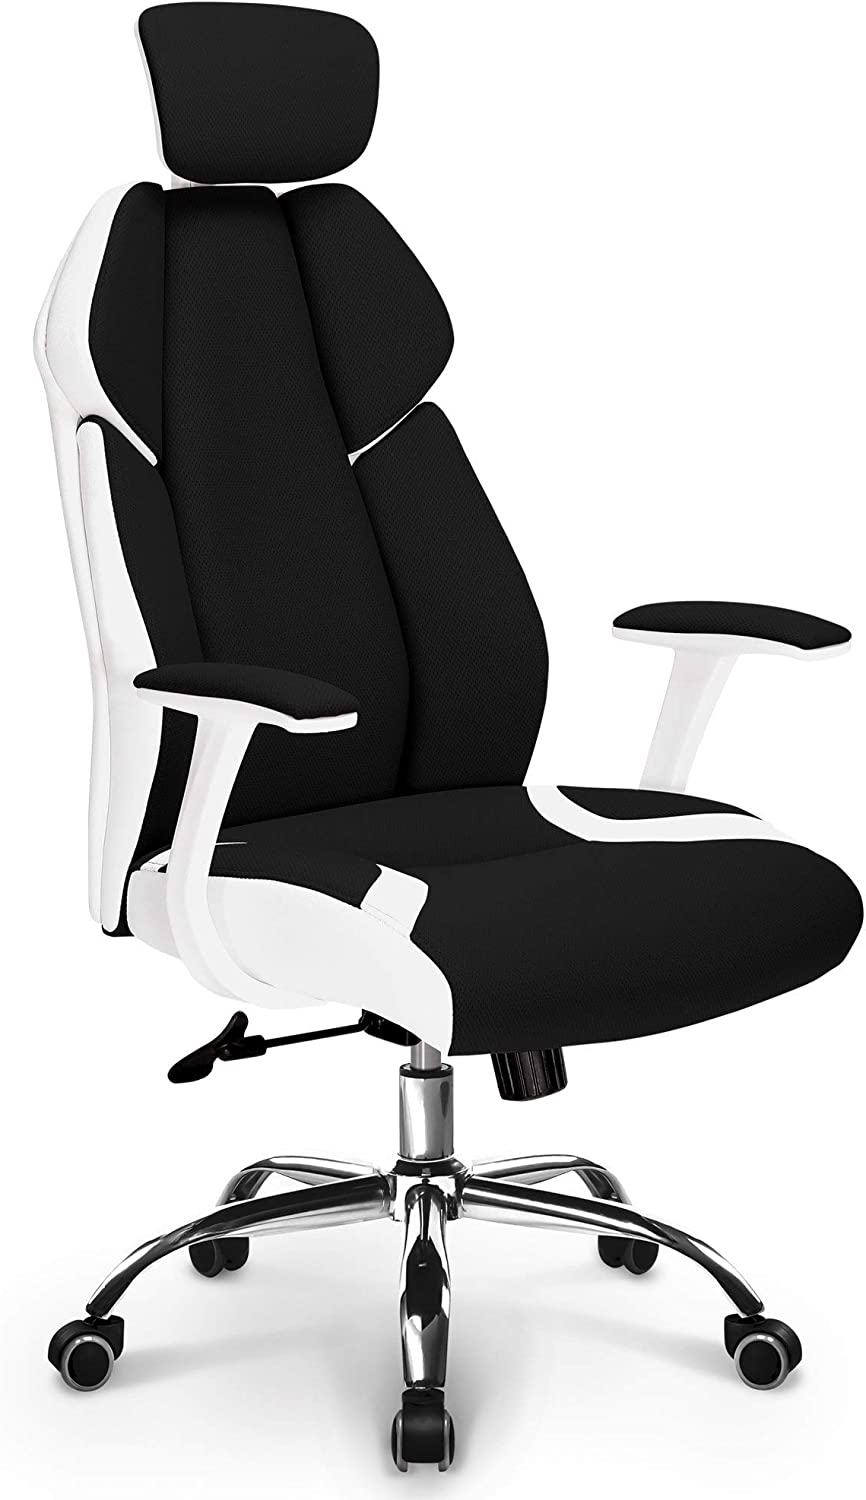 Neo Chair Premium Soft Breathable Fabric Office Gaming Executive Chair Wide Pocket Spring Seat Lumbar Support w//Ergonomic Curved Deign /& Headrest Reclining Adjustable Computer Desk Home Chair